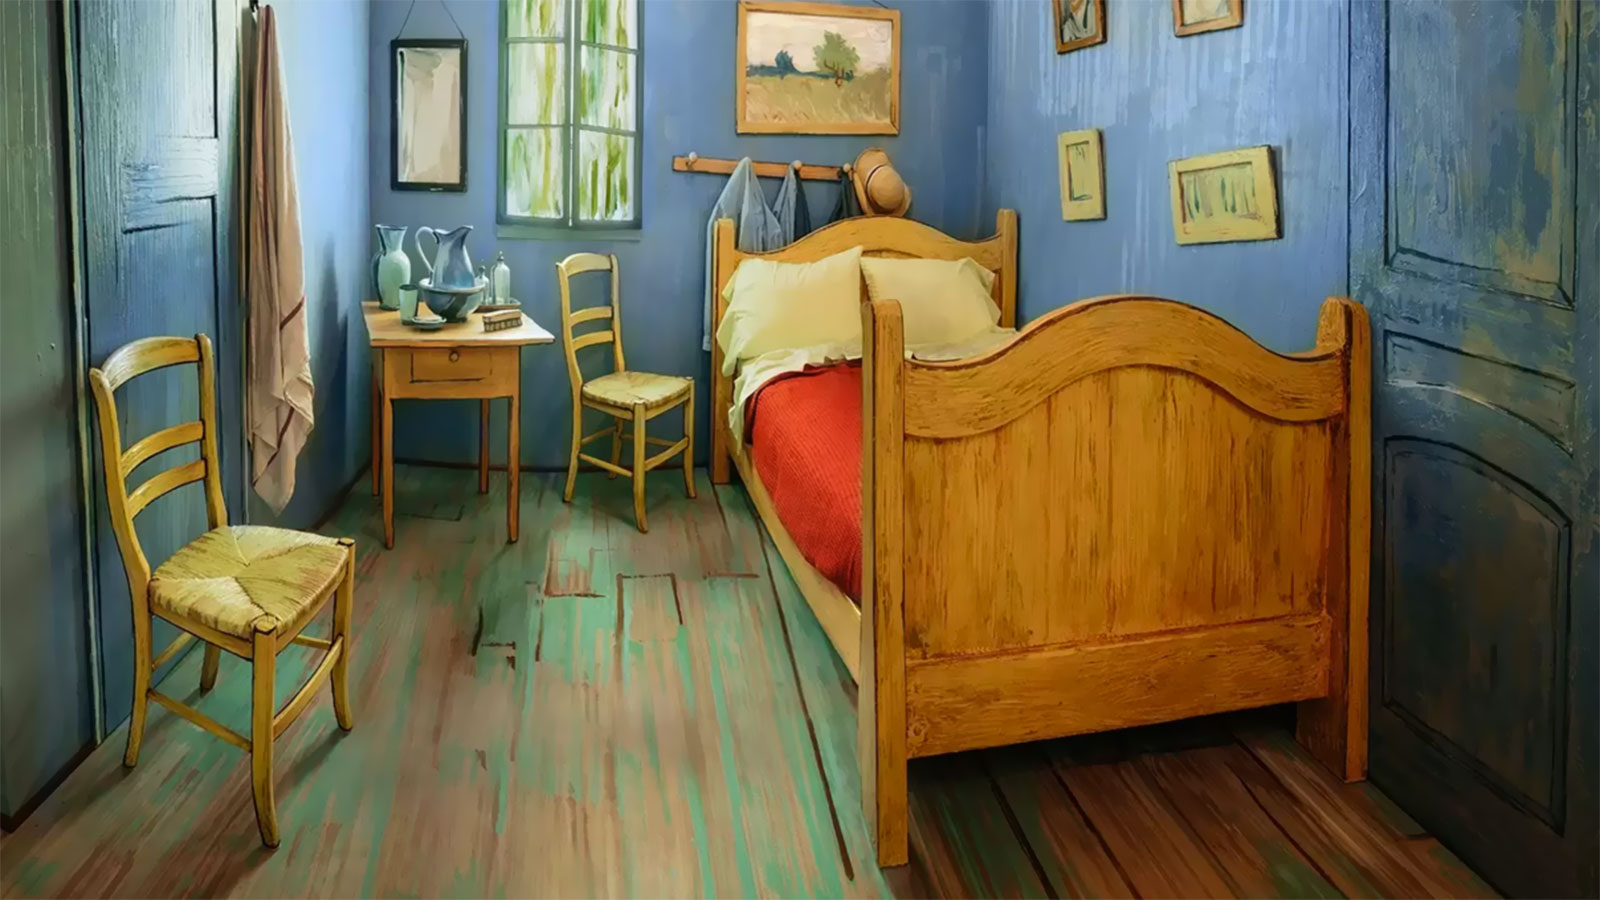 Van Gogh's Bedroom airbnb